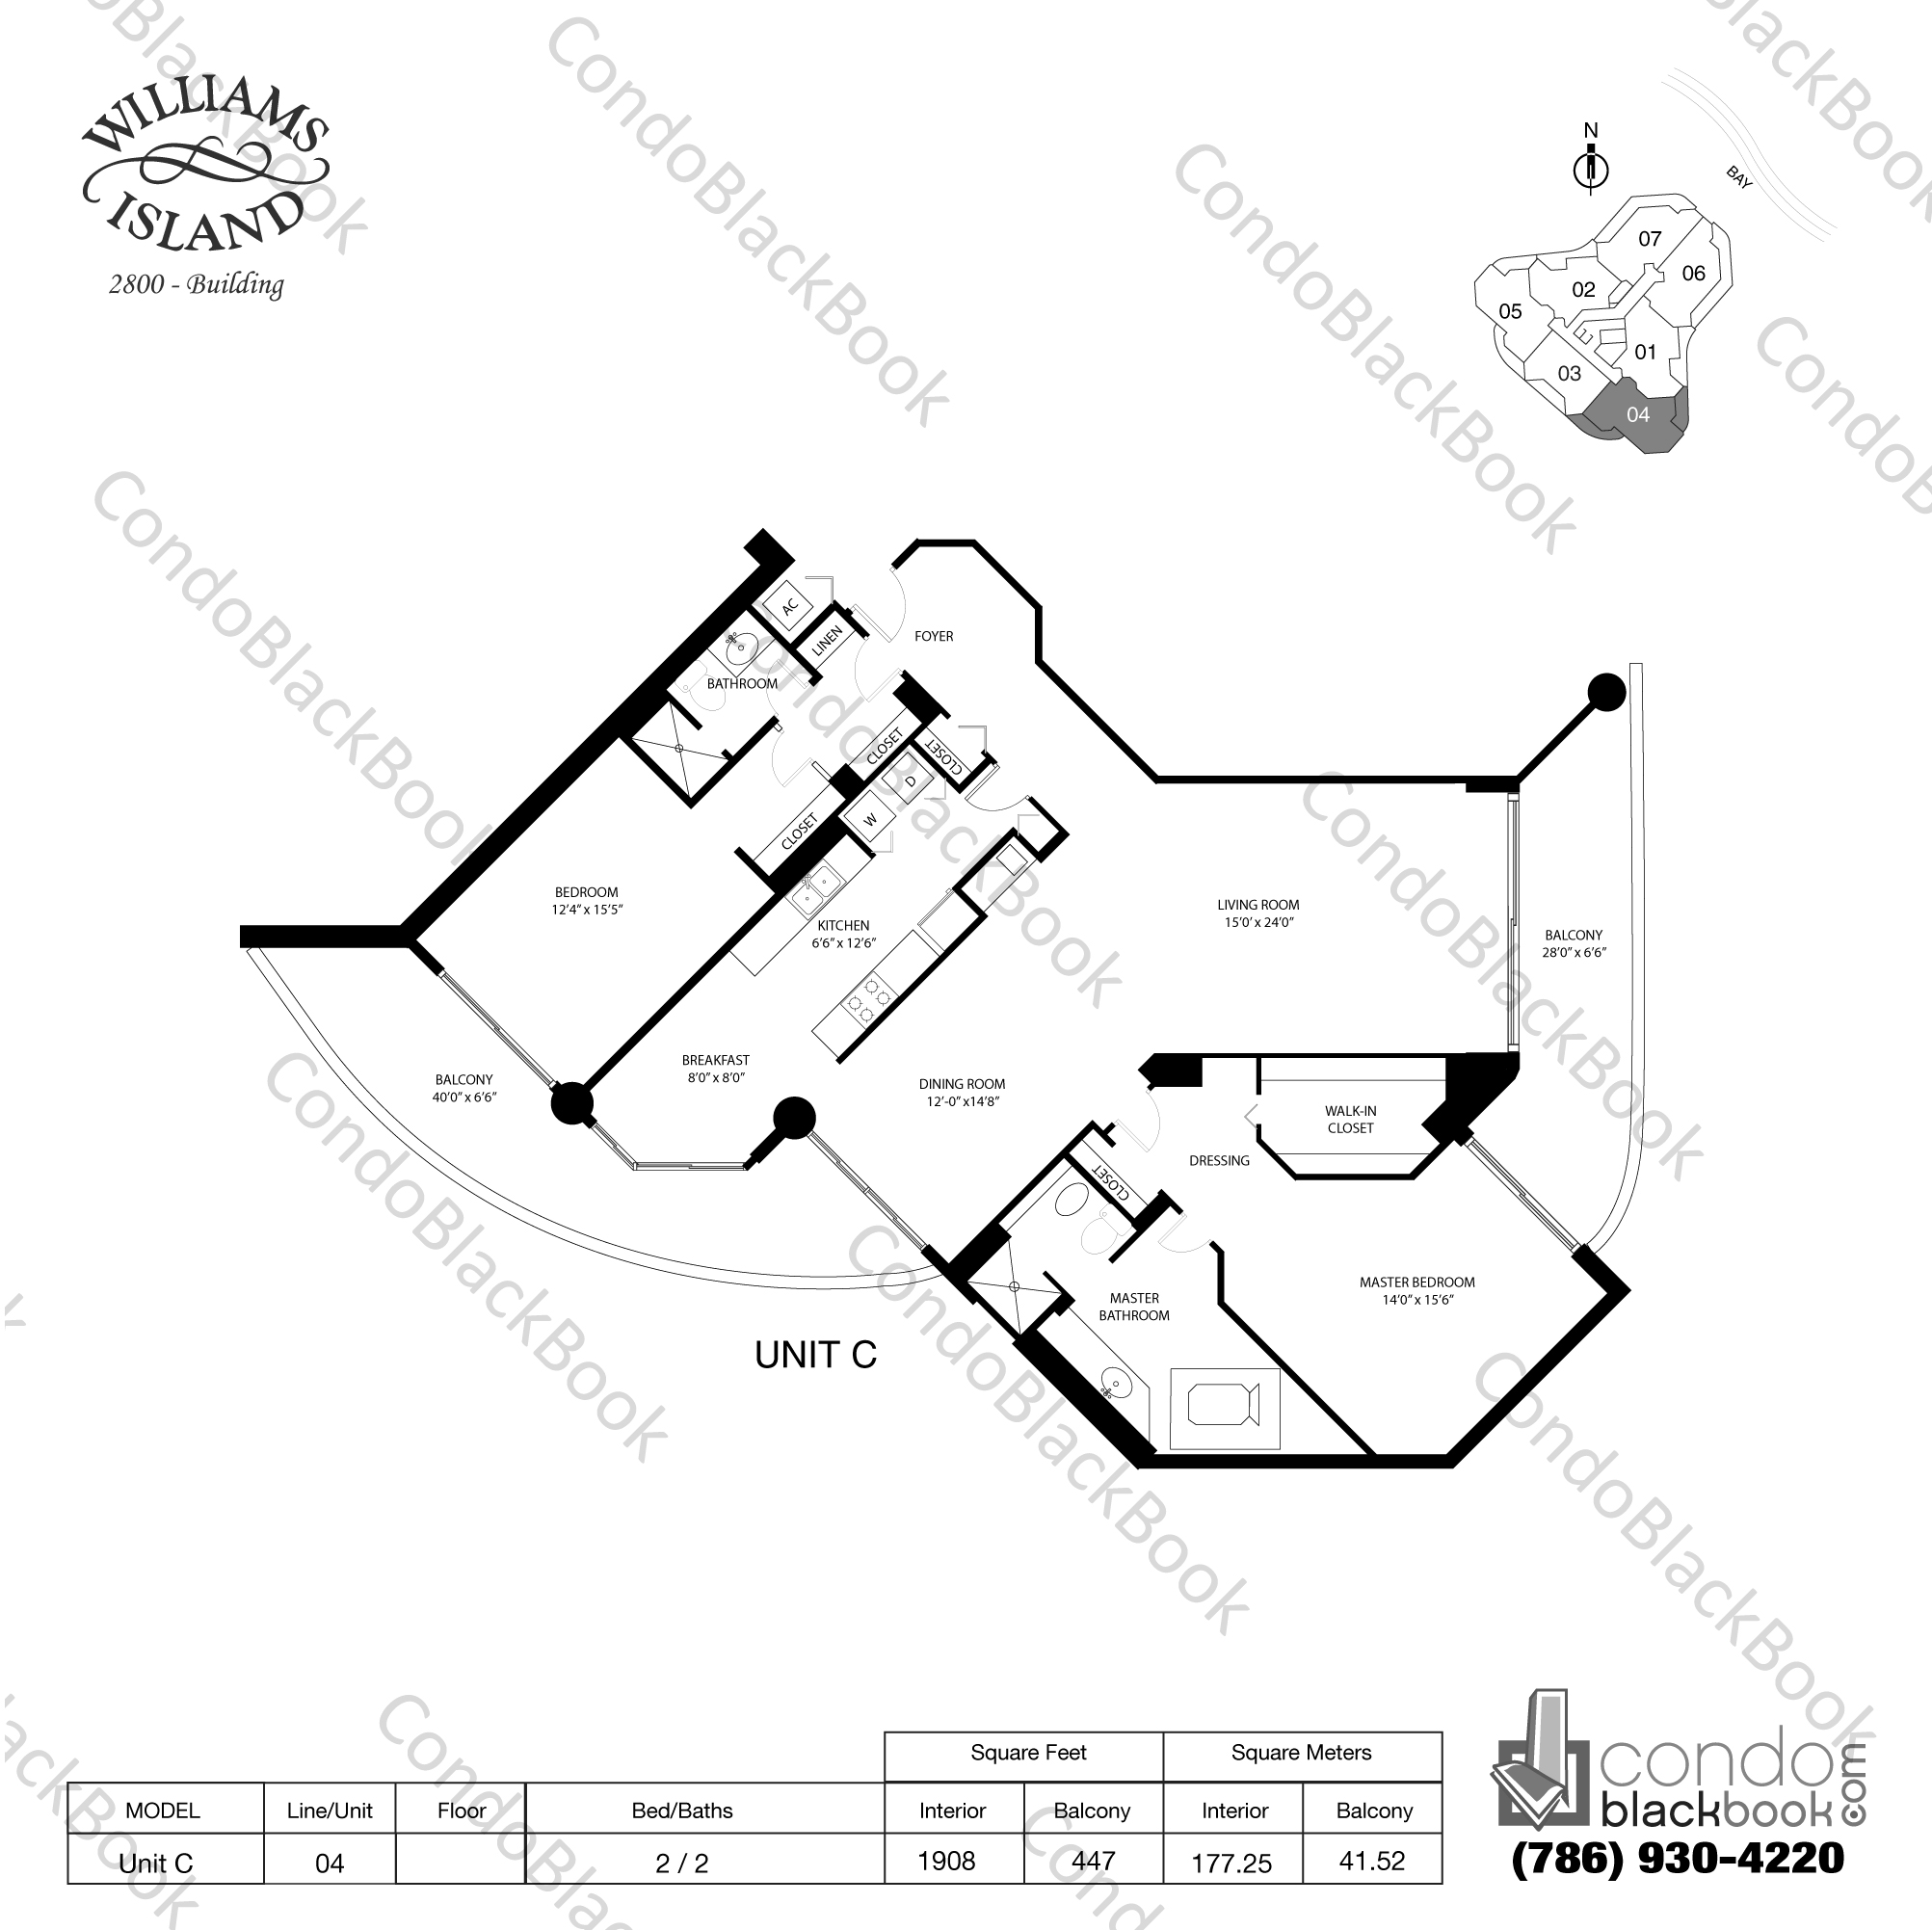 Floor plan for Williams Island 2800 Aventura, model Unit C, line 04, 2 / 2 bedrooms, 1908 sq ft